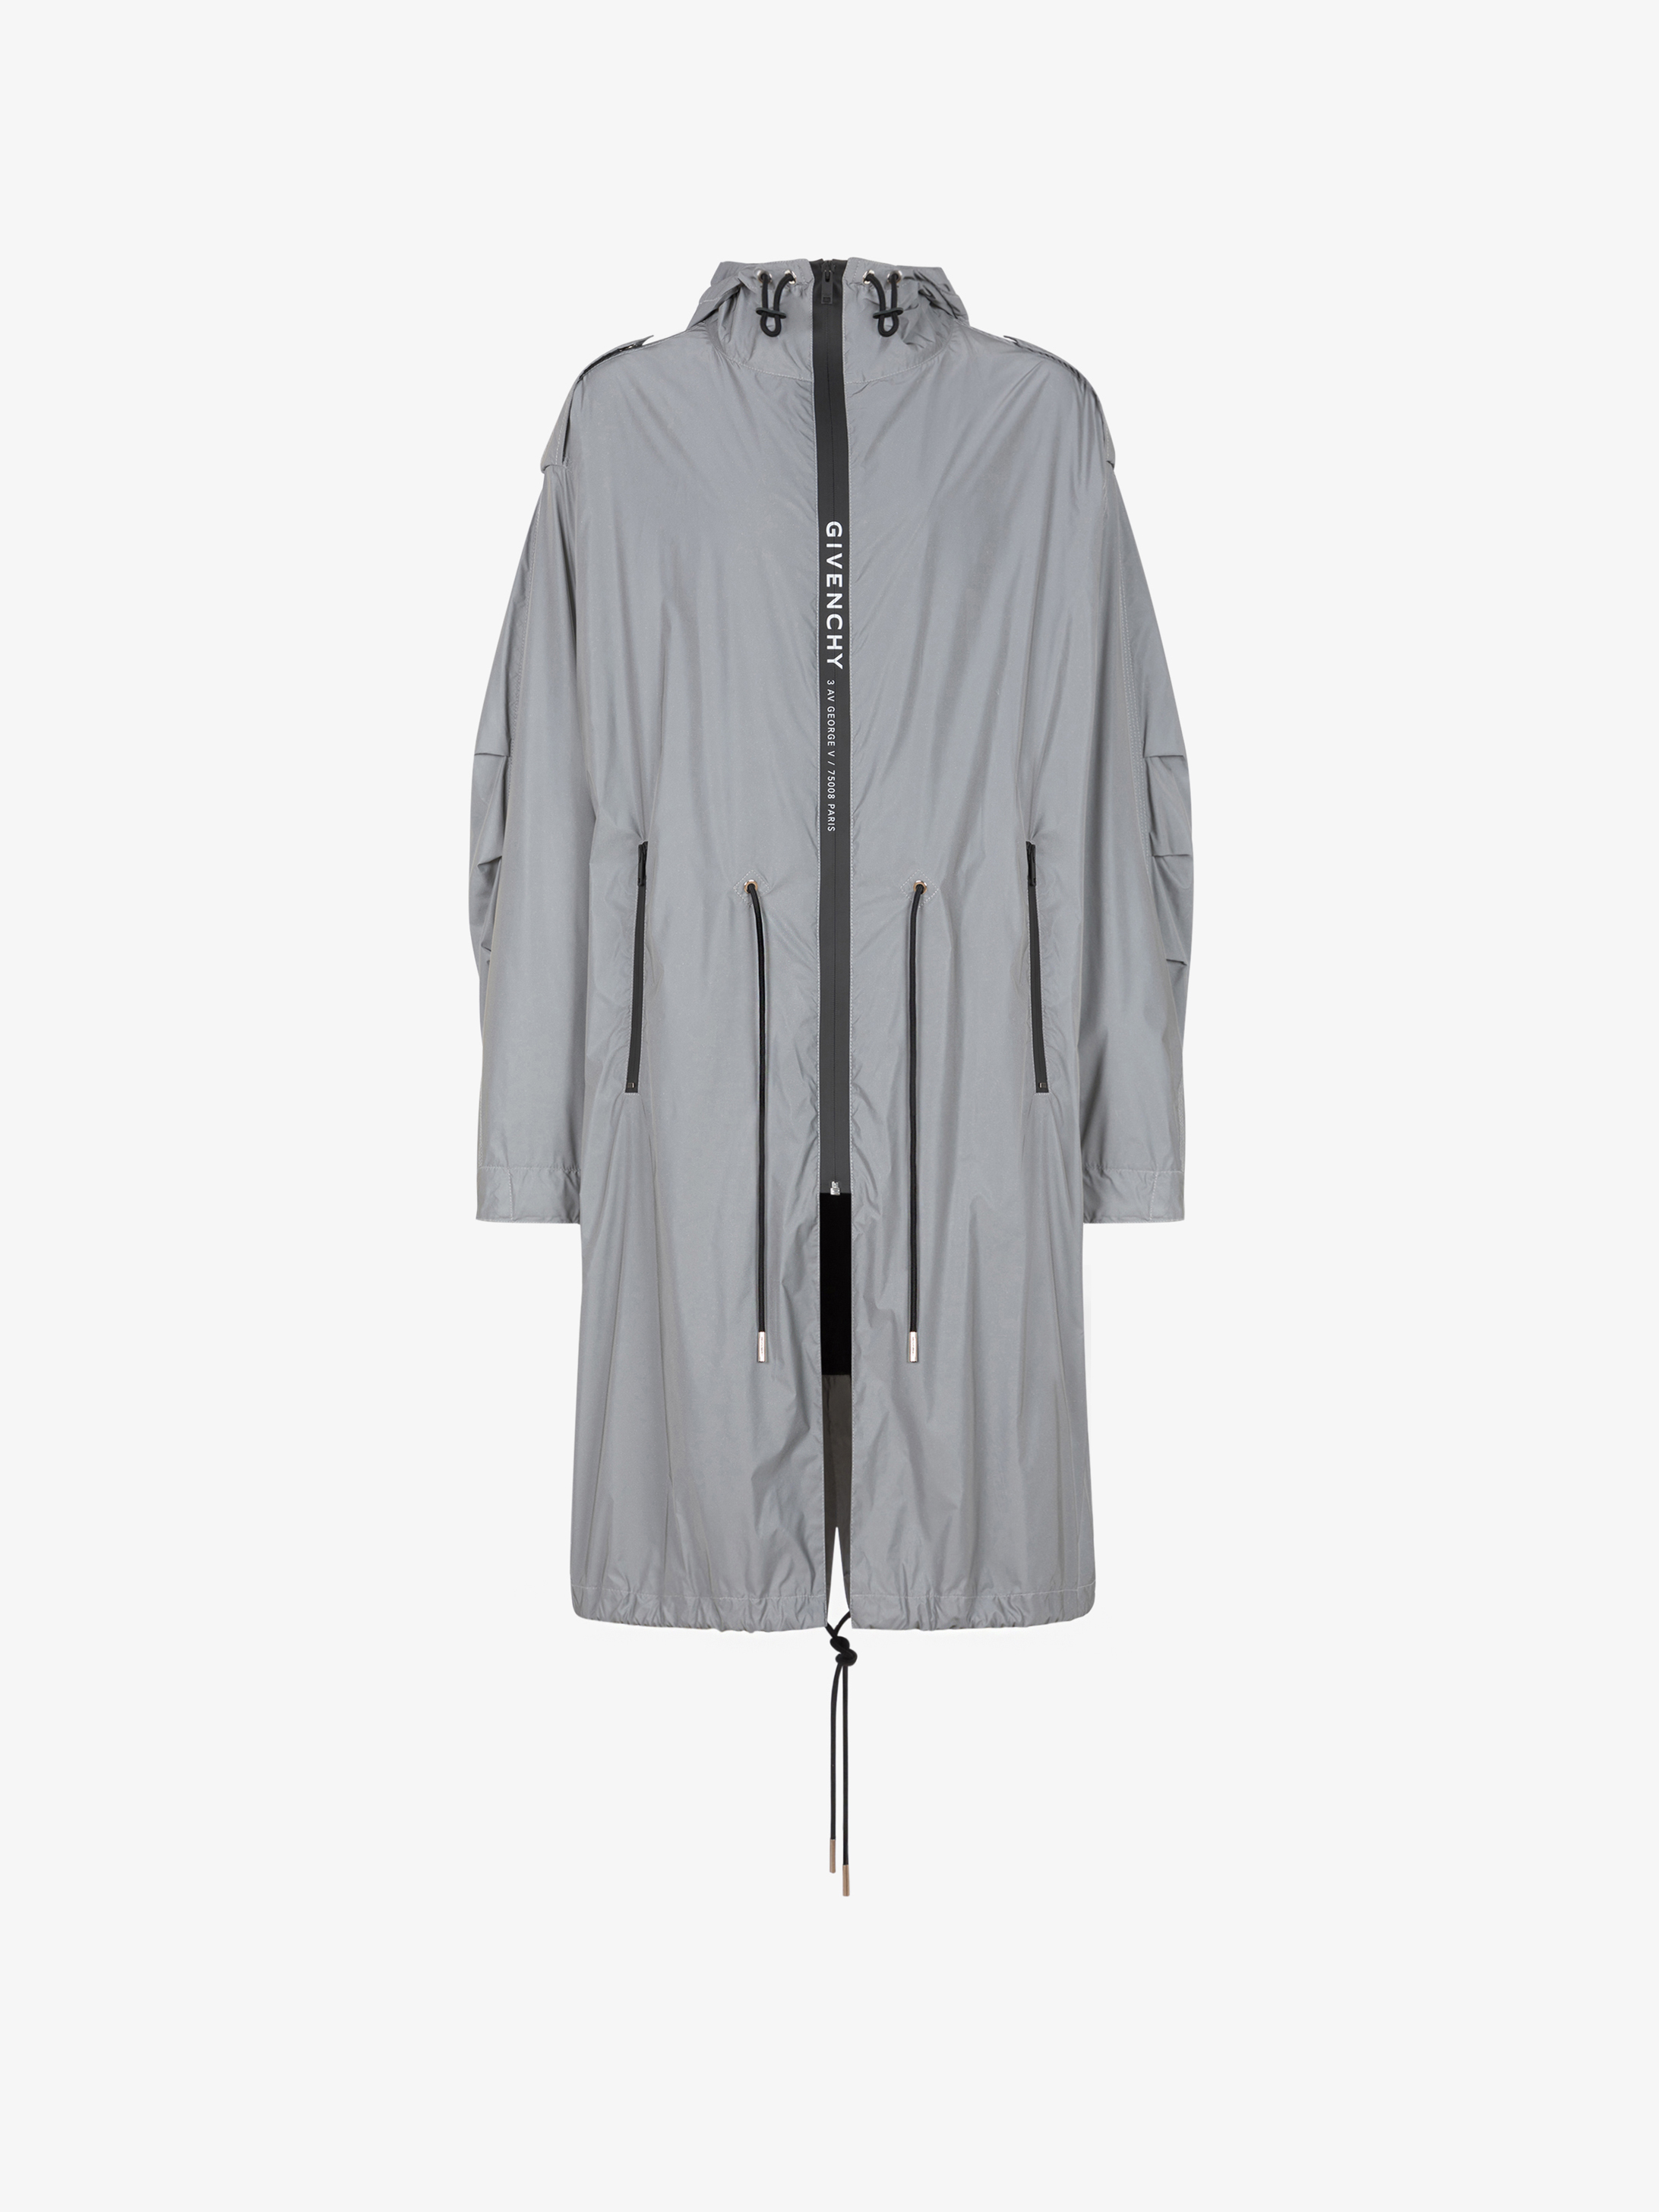 GIVENCHY ADDRESS reflective parka